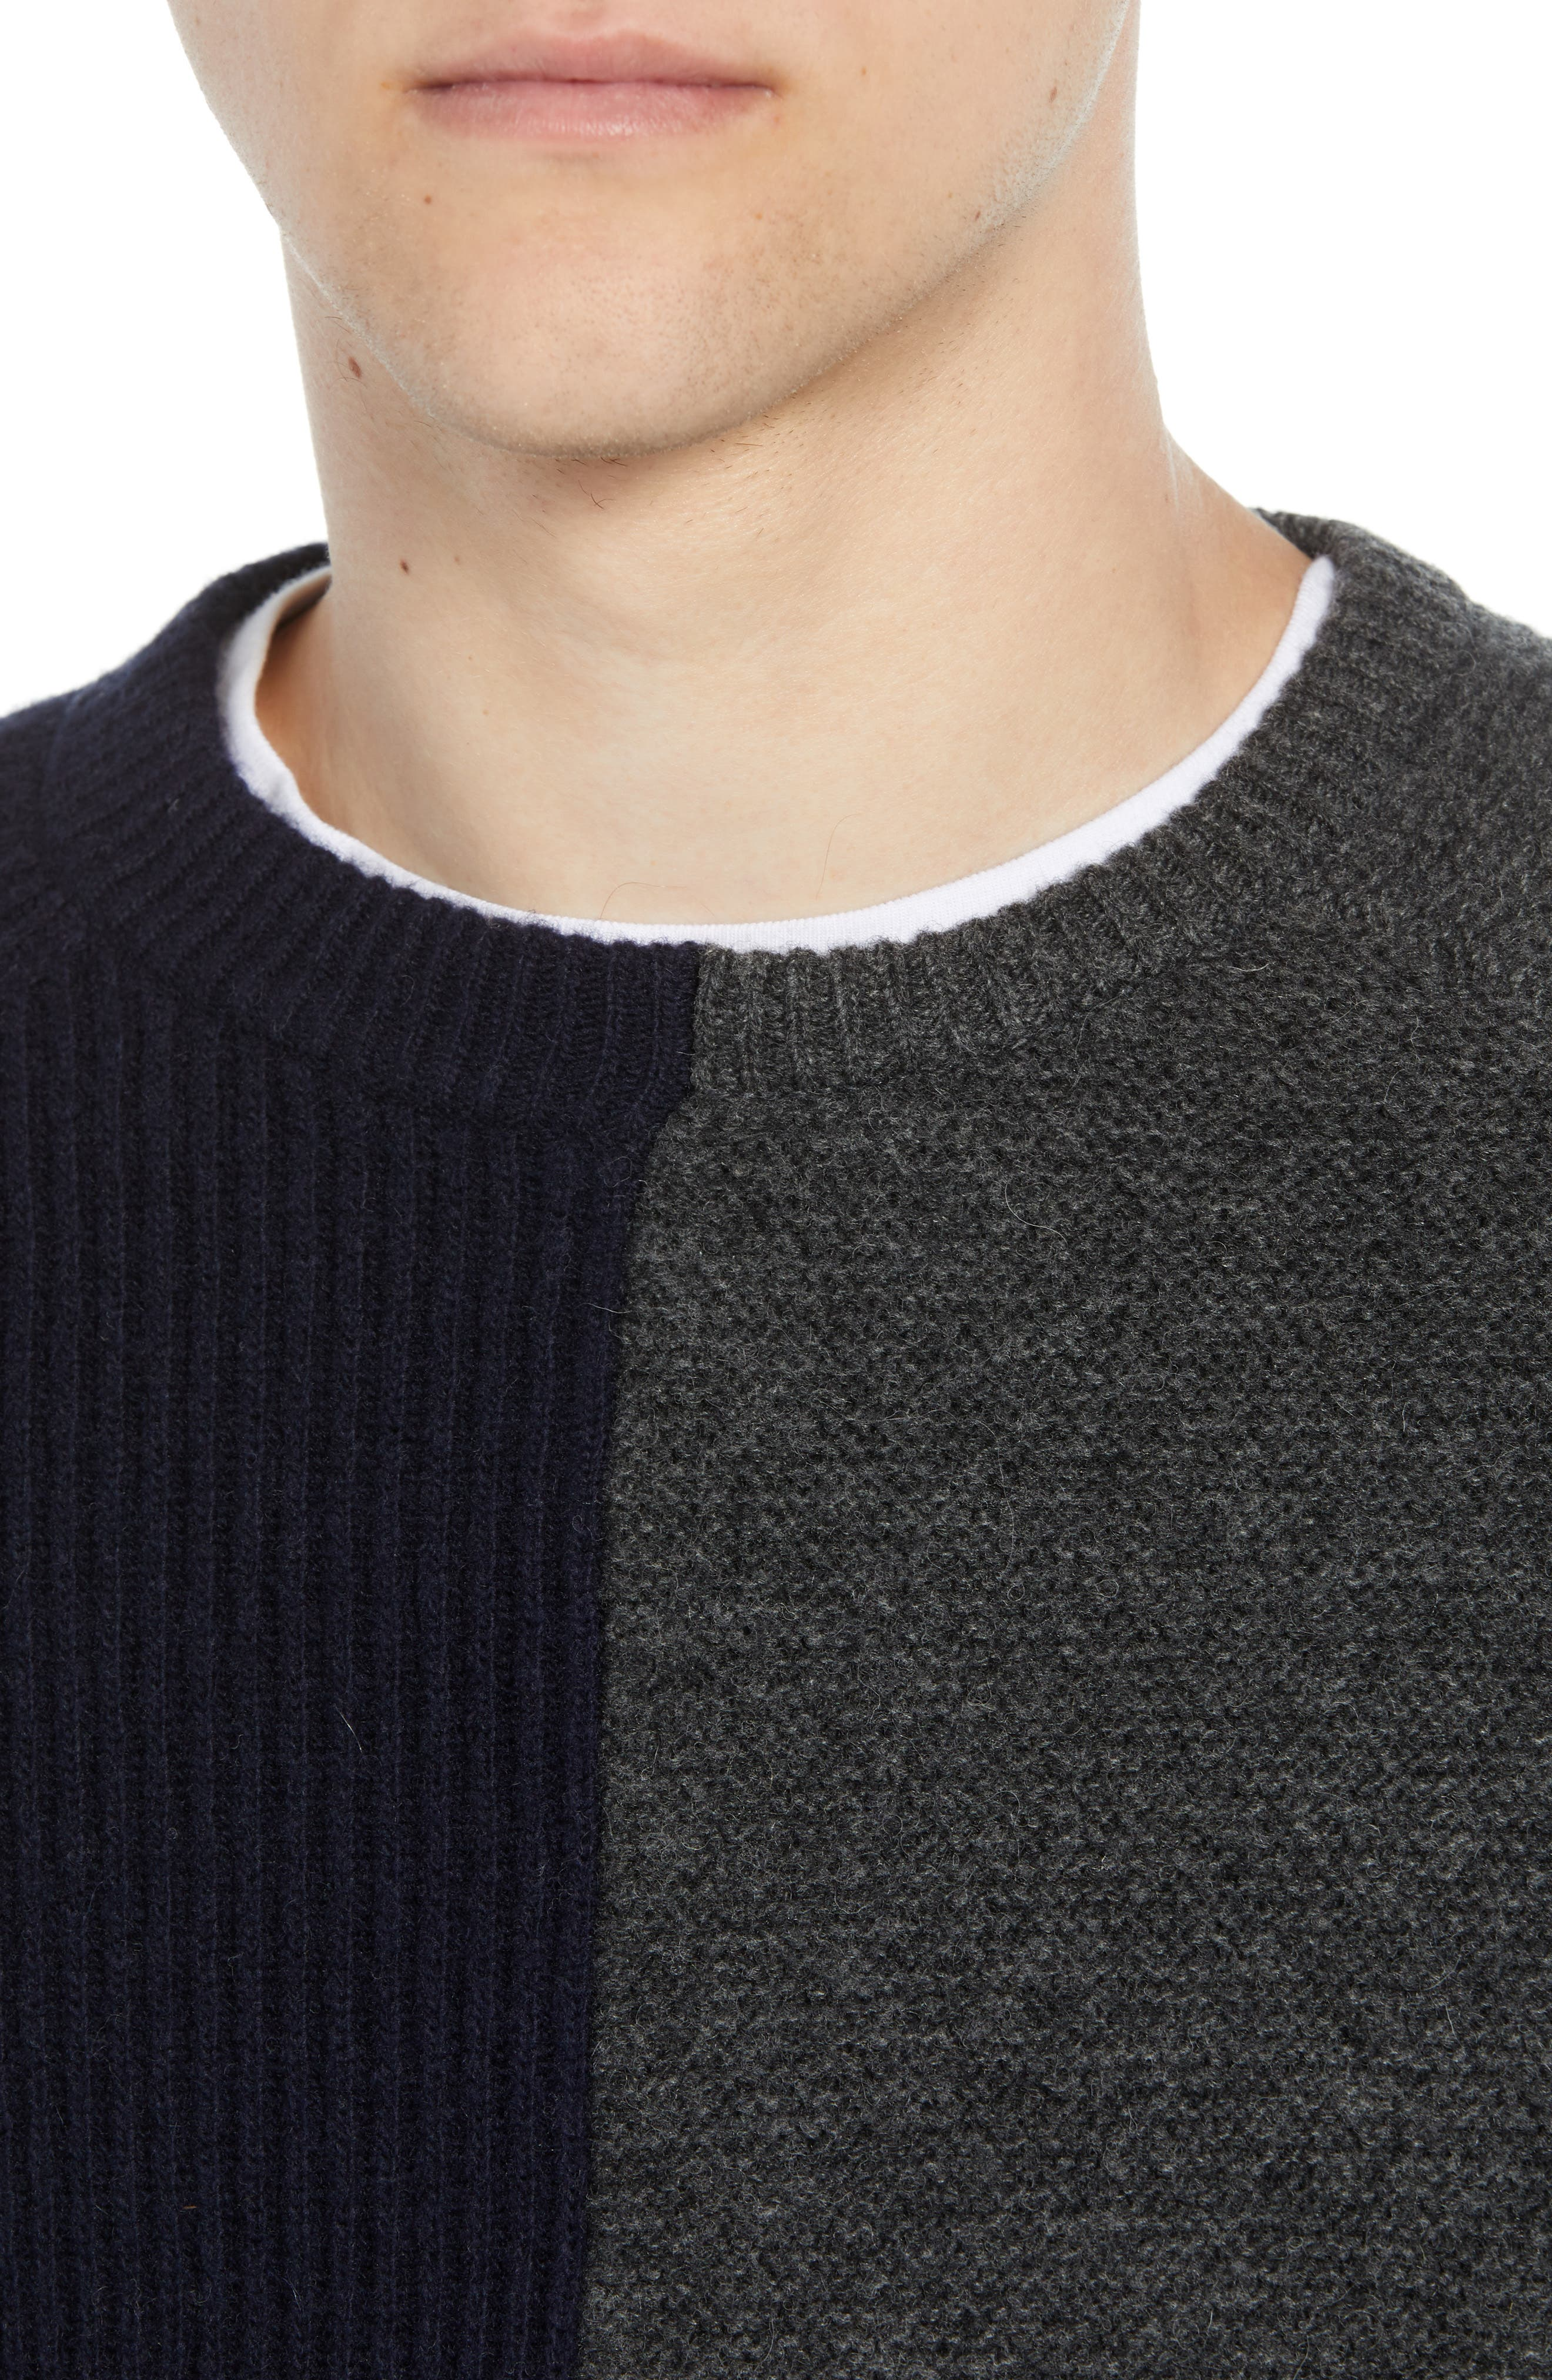 Mixed Texture Wool Blend Sweater,                             Alternate thumbnail 4, color,                             UTILITY BLUE CHARCOAL MELANGE